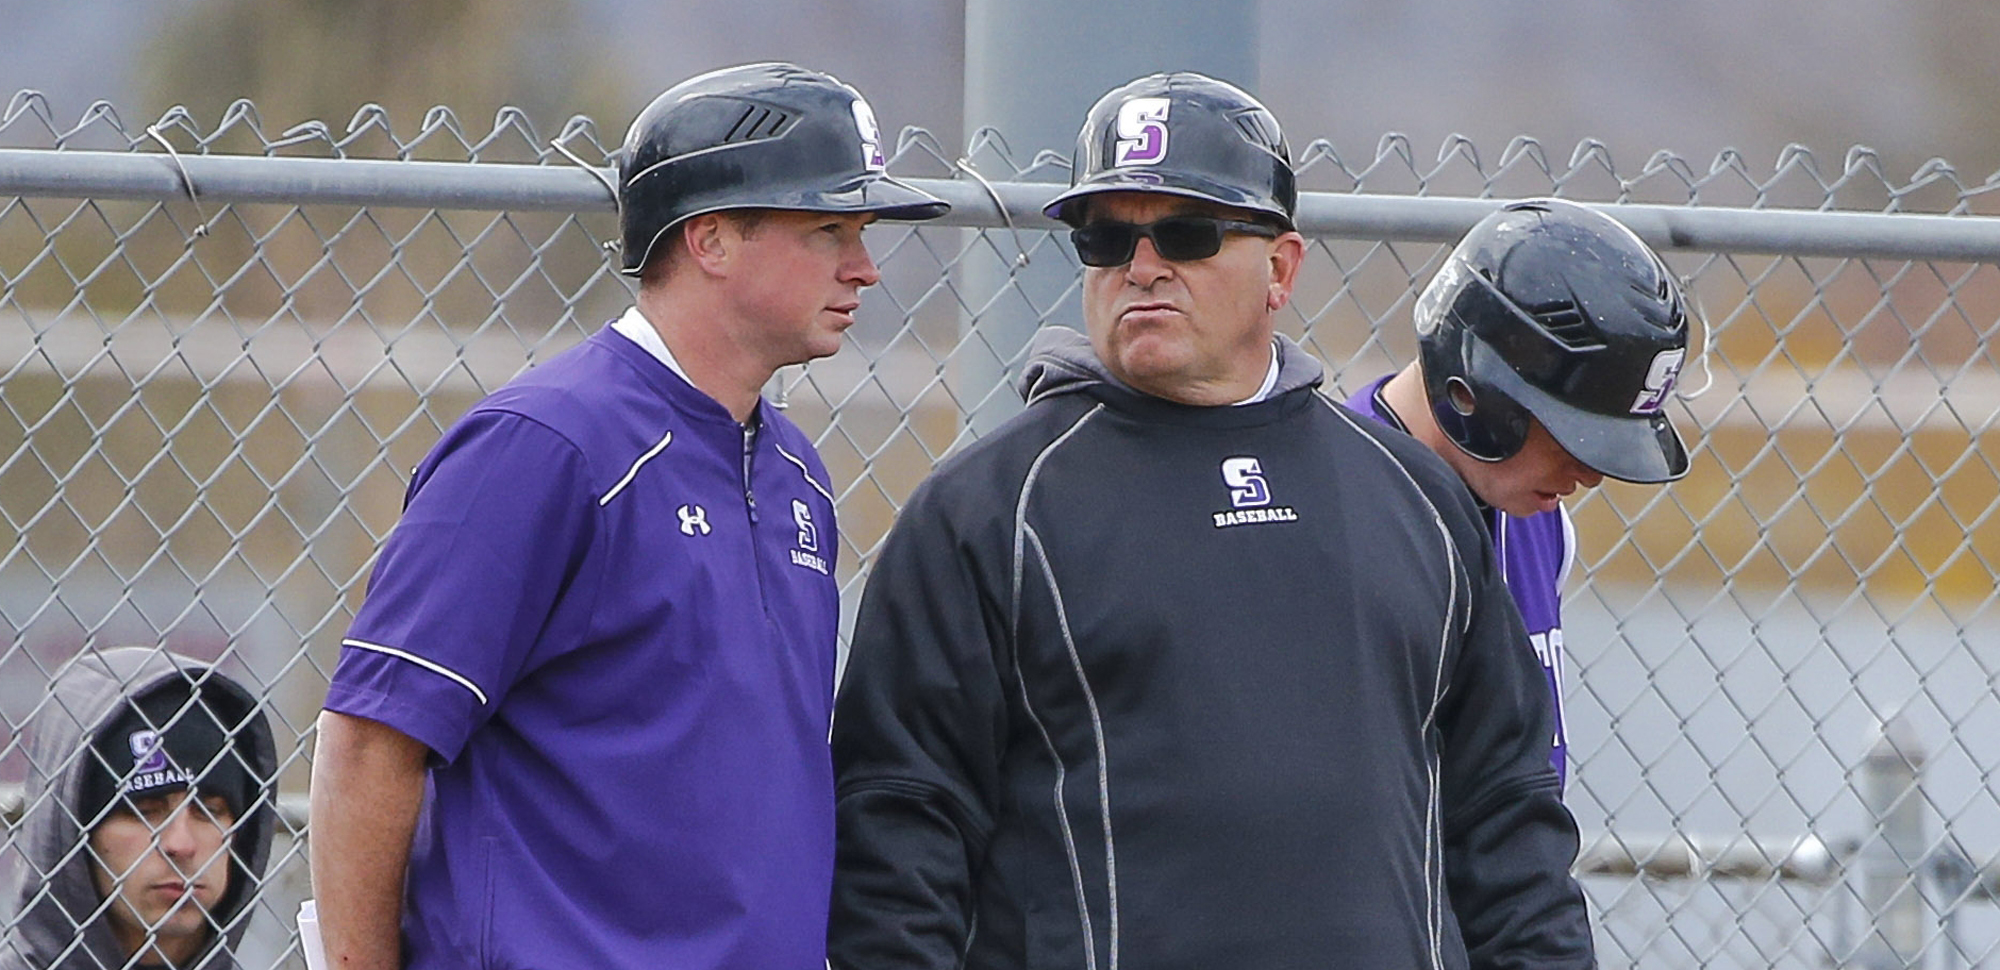 Head baseball coach Mike Bartoletti, right, has been named full-time baseball coach/athletics facilities manager.